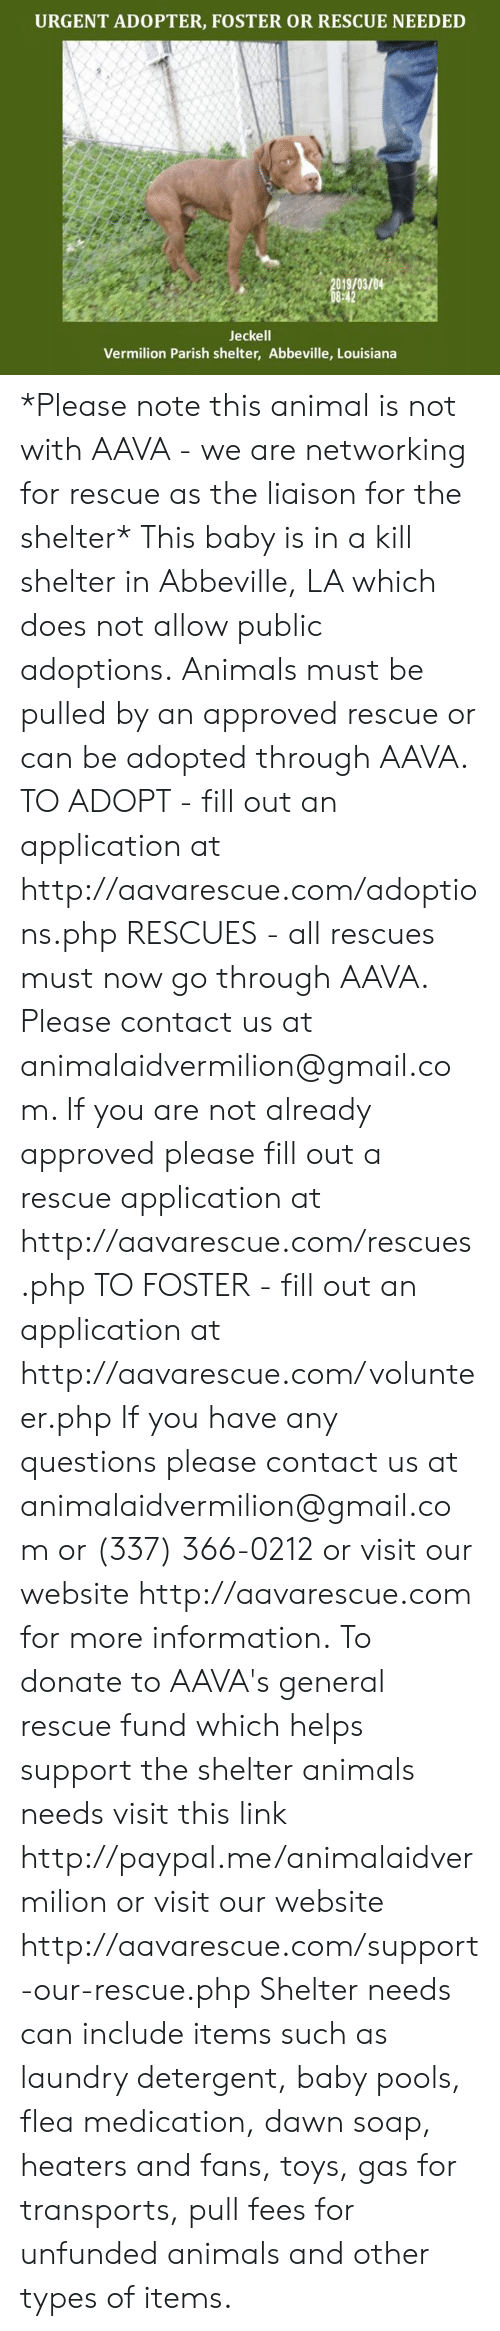 Fill Out: URGENT ADOPTER, FOSTER OR RESCUE NEEDED  019/03/04  Jeckell  Vermilion Parish shelter, Abbeville, Louisiana *Please note this animal is not with AAVA - we are networking for rescue as the liaison for the shelter* This baby is in a kill shelter in Abbeville, LA which does not allow public adoptions. Animals must be pulled by an approved rescue or can be adopted through AAVA.  TO ADOPT - fill out an application at http://aavarescue.com/adoptions.php  RESCUES - all rescues must now go through AAVA. Please contact us at animalaidvermilion@gmail.com. If you are not already approved please fill out a rescue application at http://aavarescue.com/rescues.php  TO FOSTER - fill out an application at http://aavarescue.com/volunteer.php  If you have any questions please contact us at animalaidvermilion@gmail.com or (337) 366-0212 or visit our website http://aavarescue.com for more information.  To donate to AAVA's general rescue fund which helps support the shelter animals needs visit this link http://paypal.me/animalaidvermilion or visit our website http://aavarescue.com/support-our-rescue.php Shelter needs can include items such as laundry detergent, baby pools, flea medication, dawn soap, heaters and fans, toys, gas for transports, pull fees for unfunded animals and other types of items.